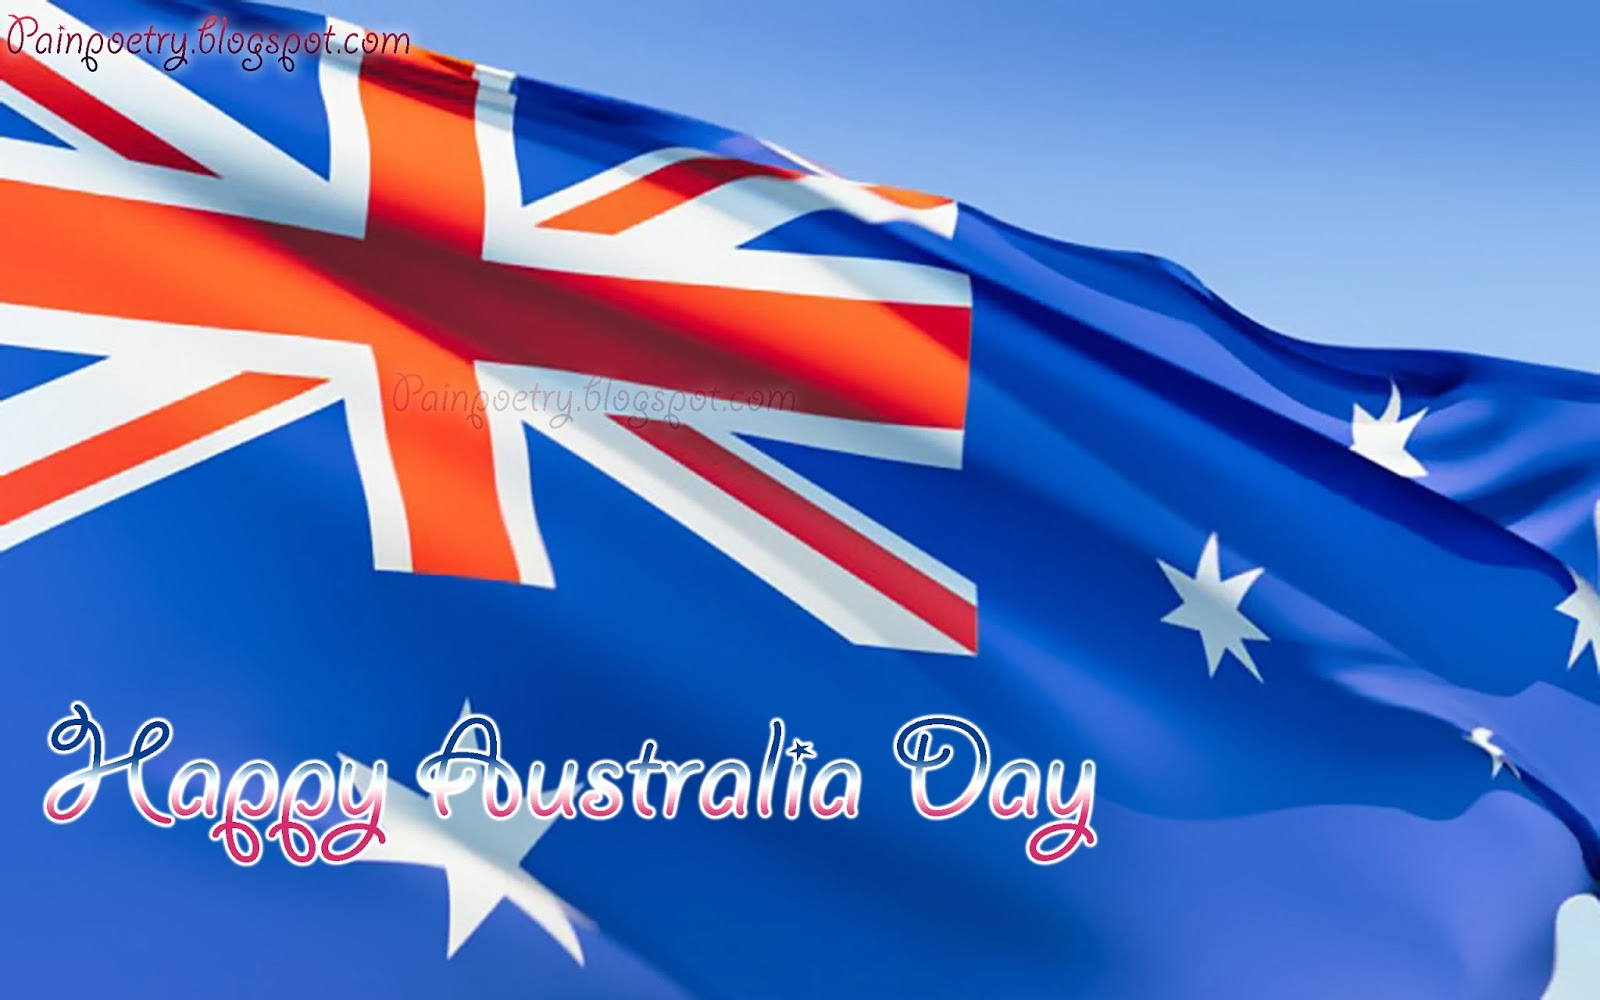 Happy-Australia-Day-Flage-Image-HD-Wide